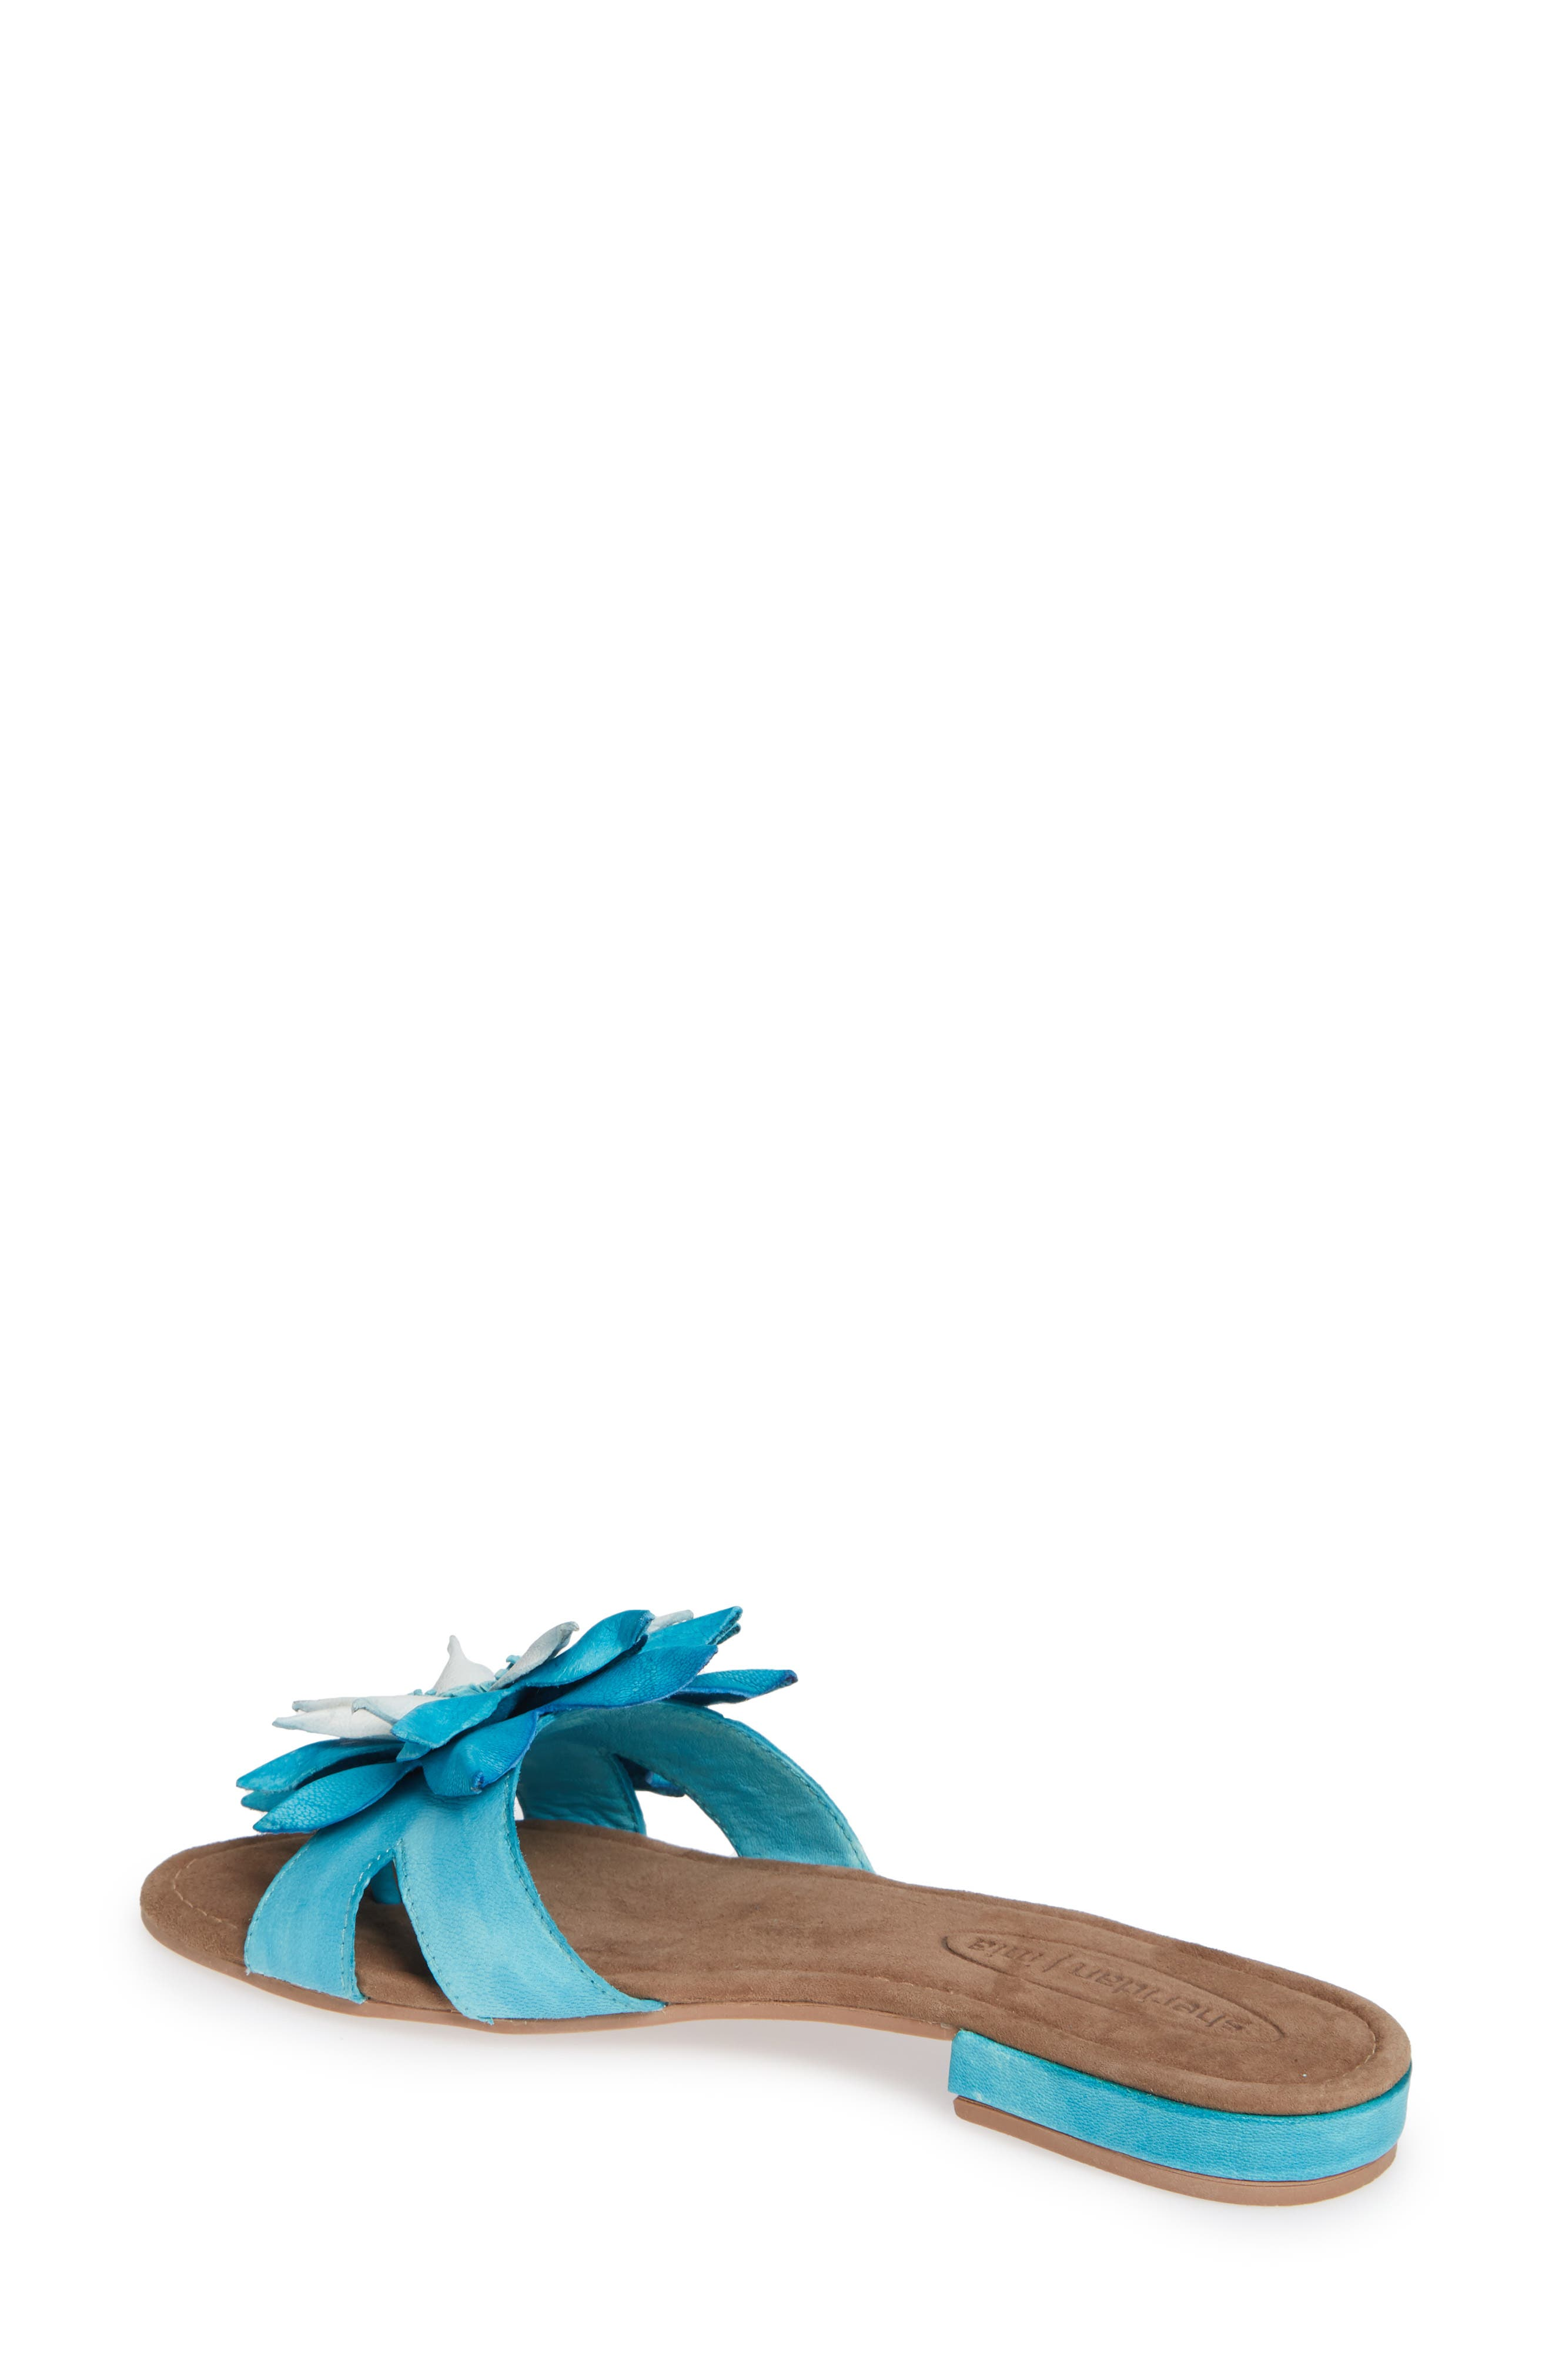 Stella Sandal,                             Alternate thumbnail 2, color,                             TURQUOISE LEATHER